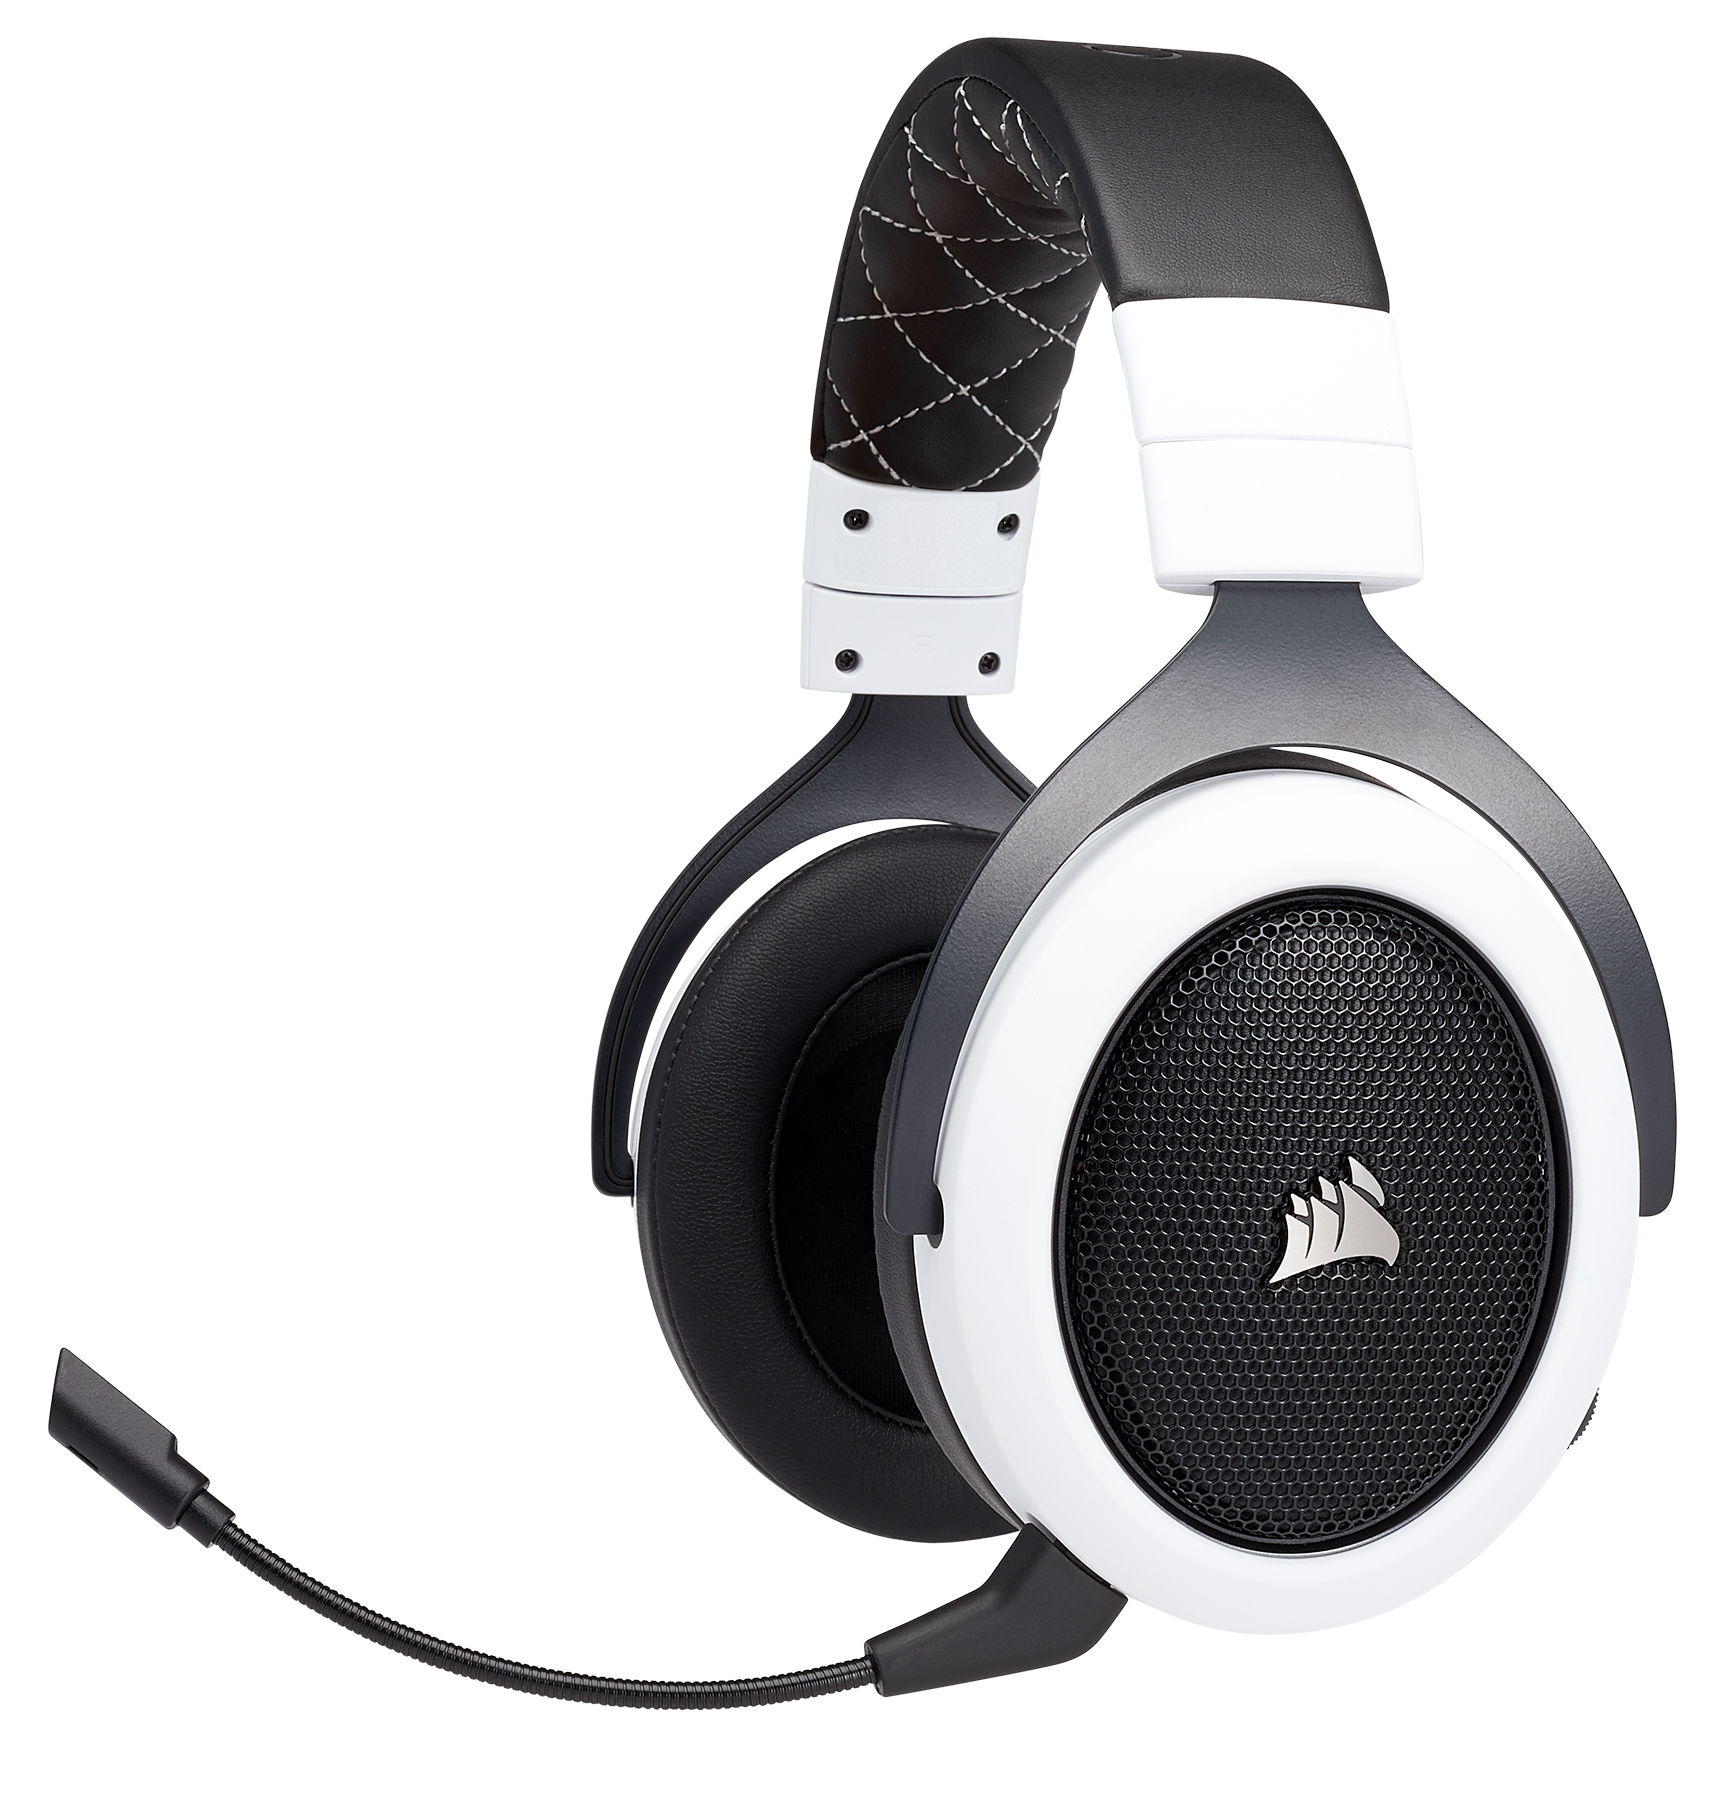 slide 1 of 10,show larger image, produktbillede